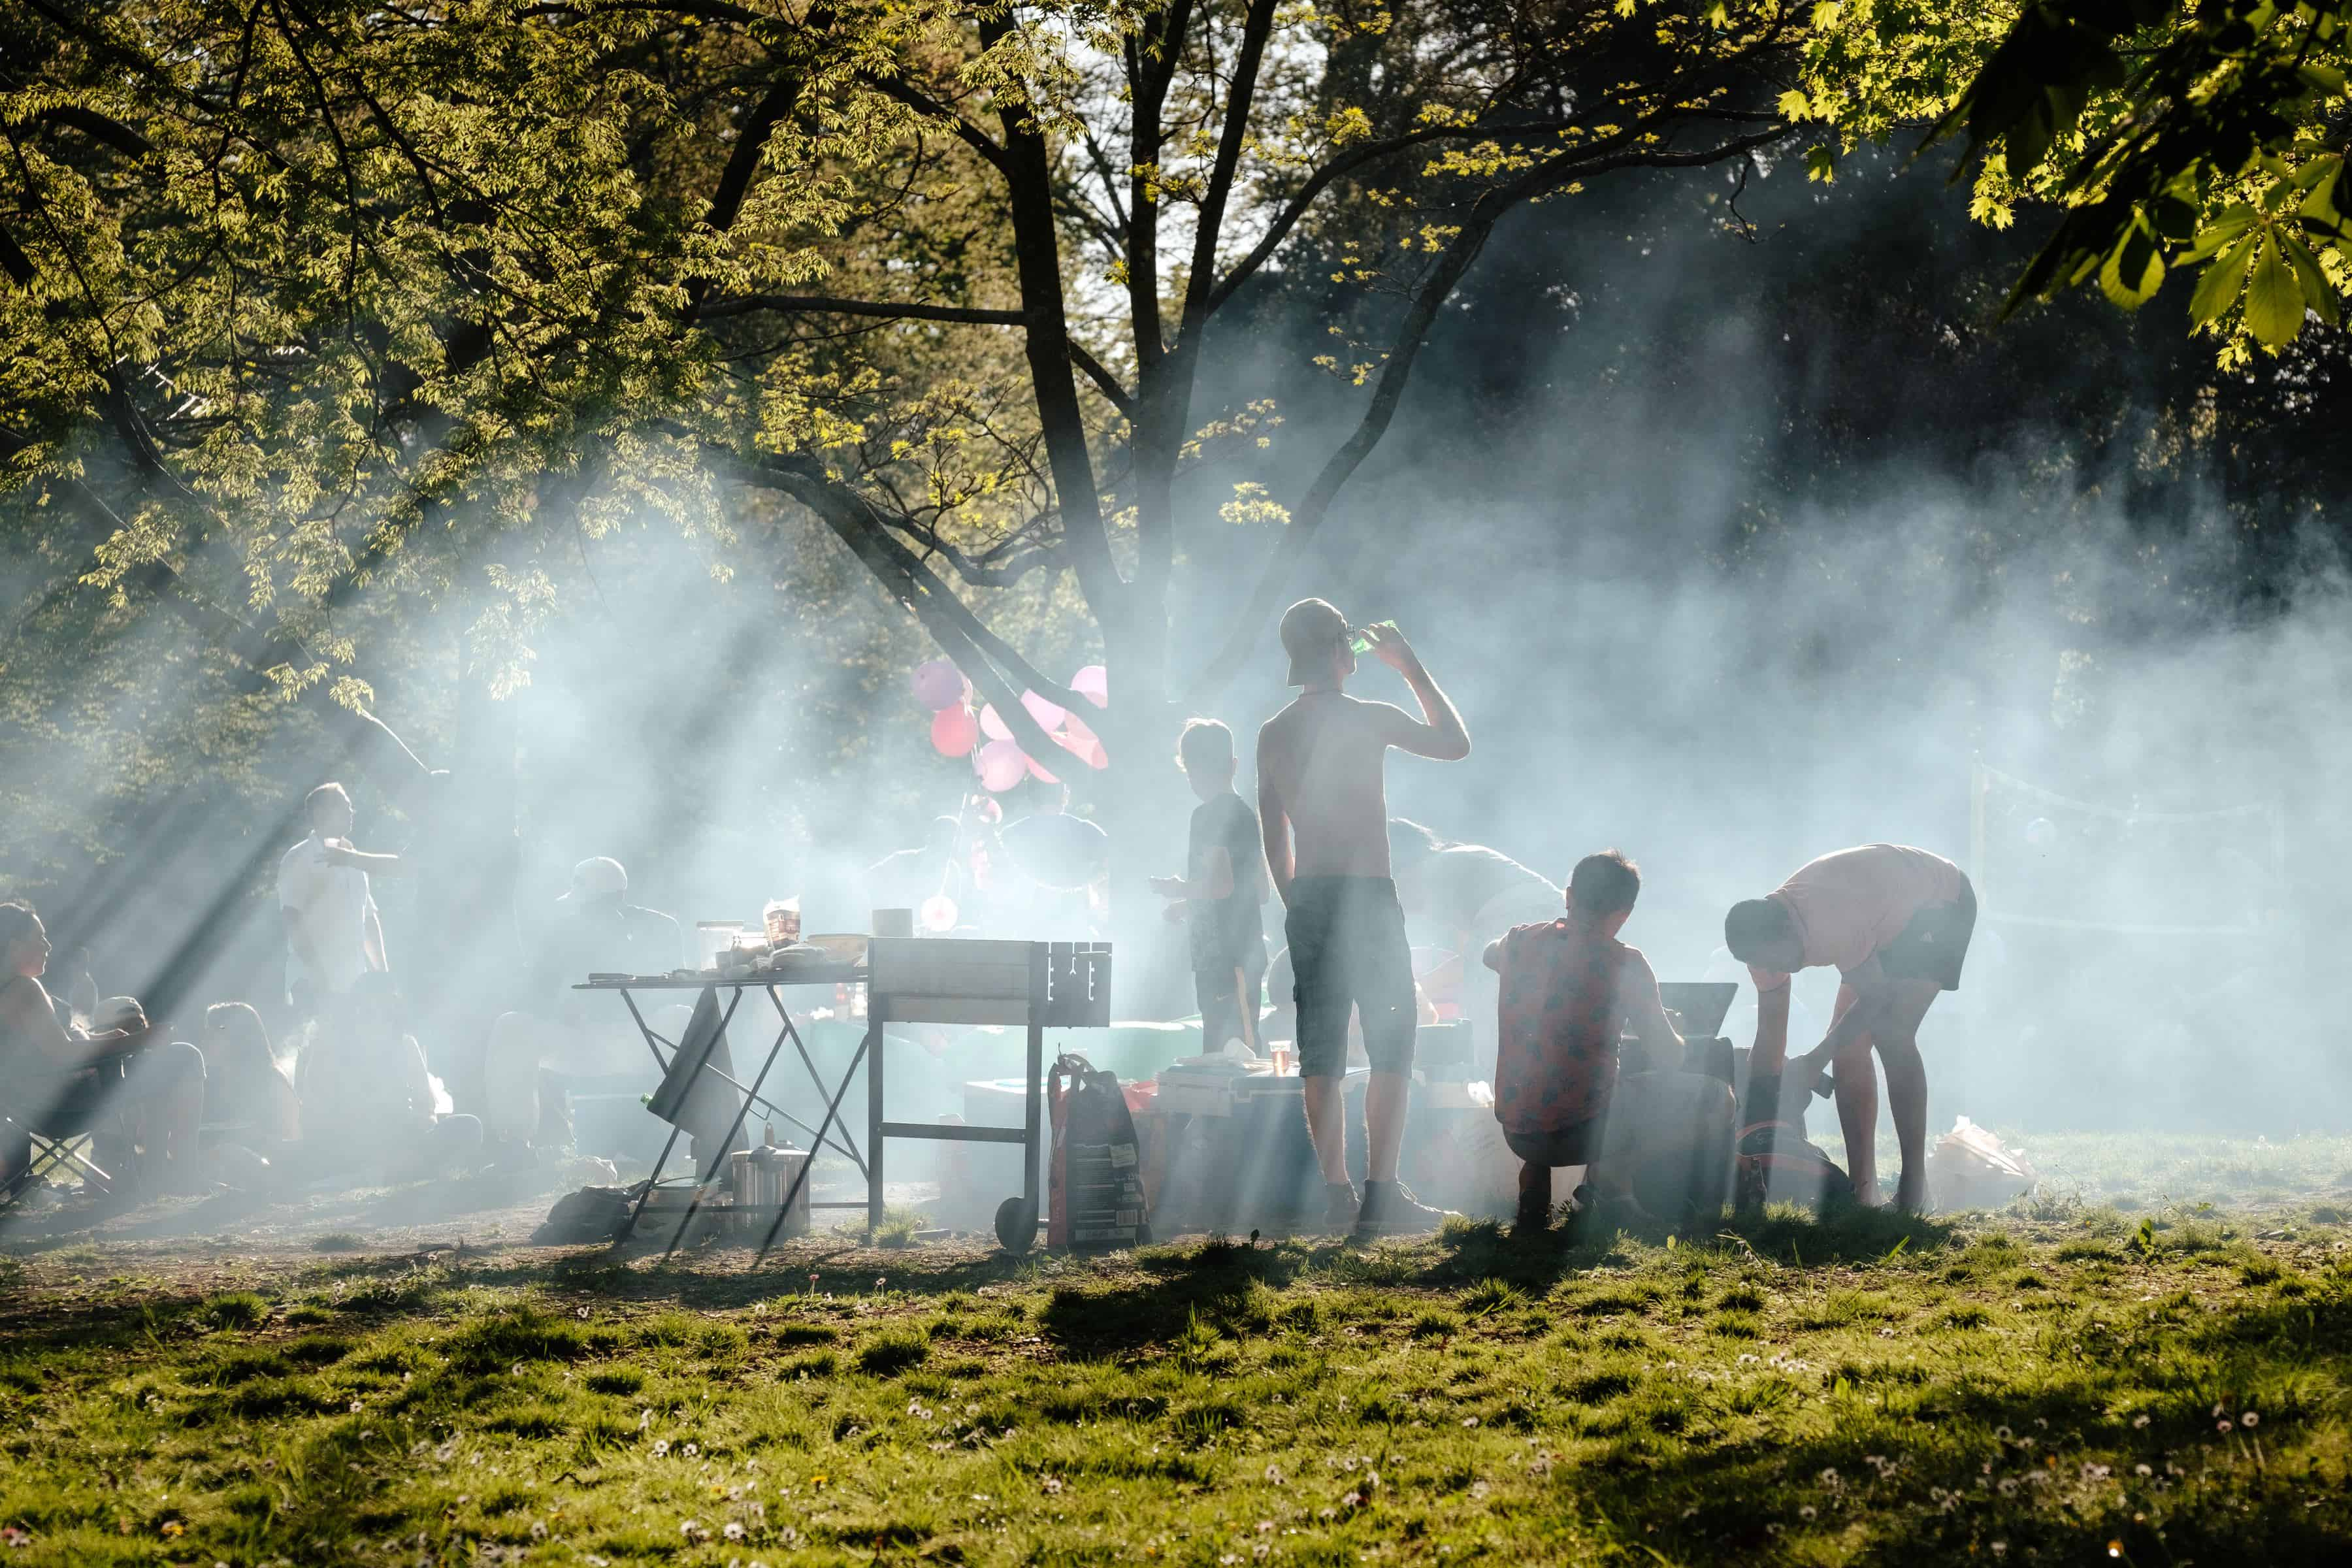 people barbecuing under green tree